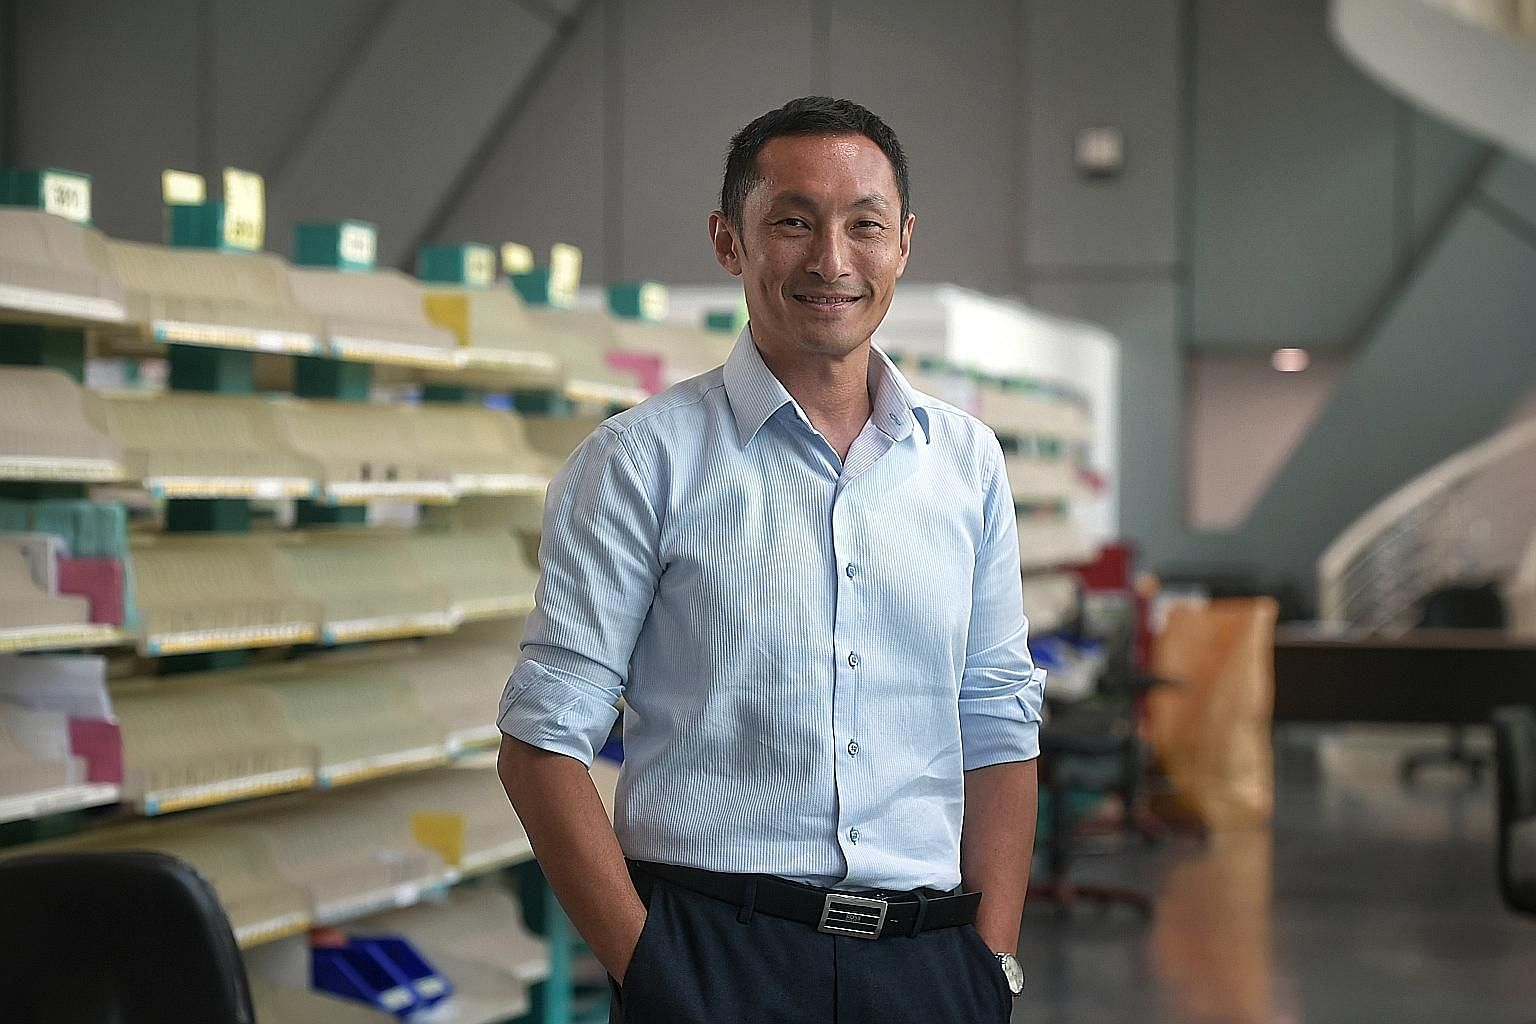 Mr Vincent Phang, country head and chief executive of postal services at SingPost, says it is in talks with government agencies to upgrade infrastructure to make receiving mail and parcels more convenient and efficient.